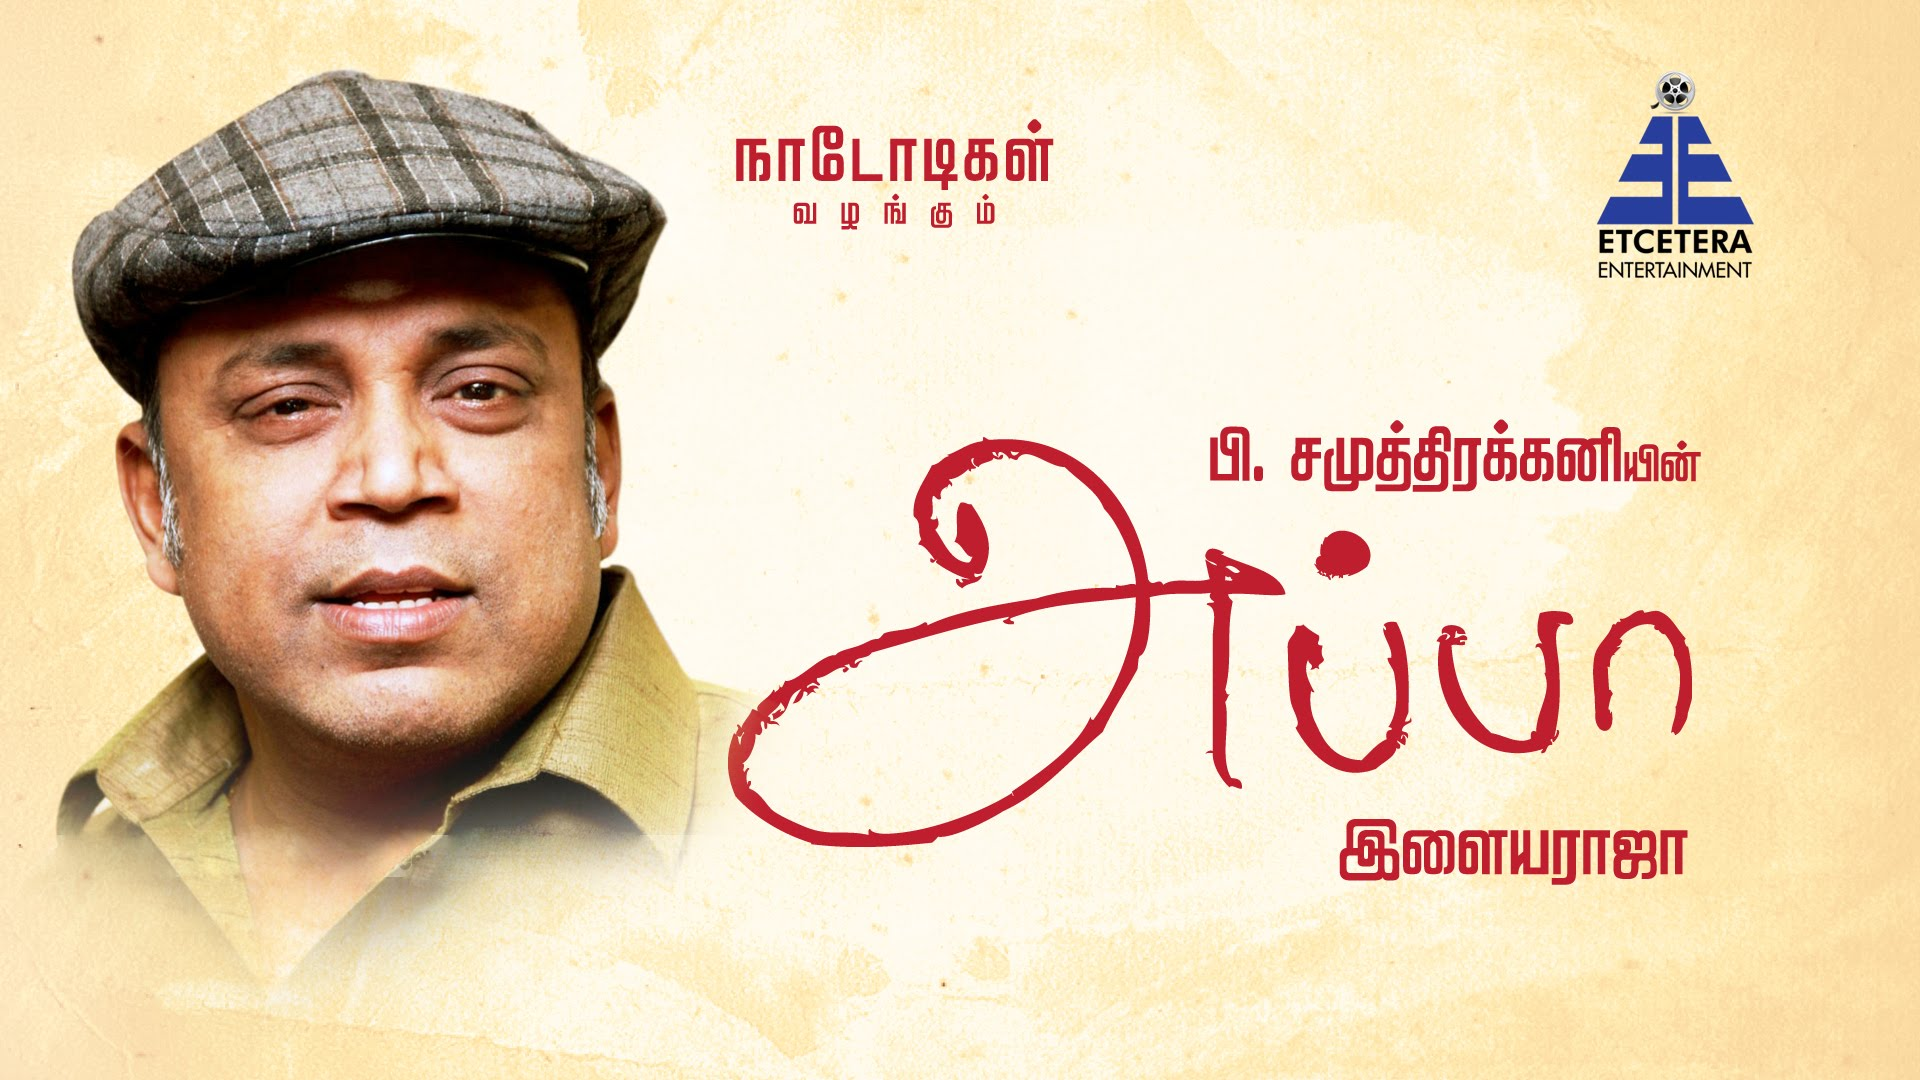 En Appa – Actor Thambi Ramaiah Speaks About His Father